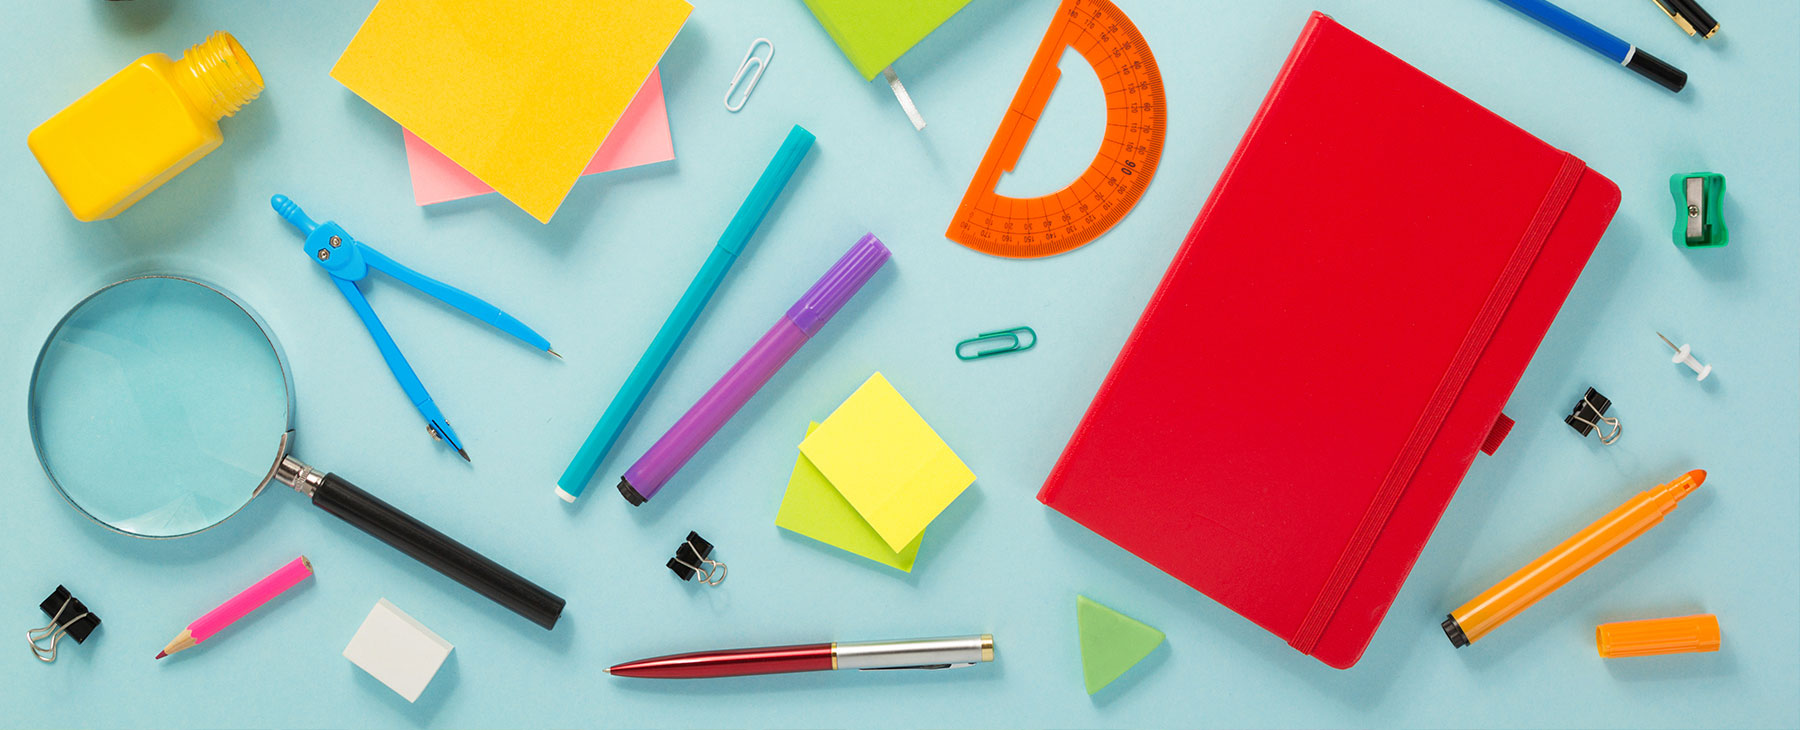 Sai Office Services - Stationery